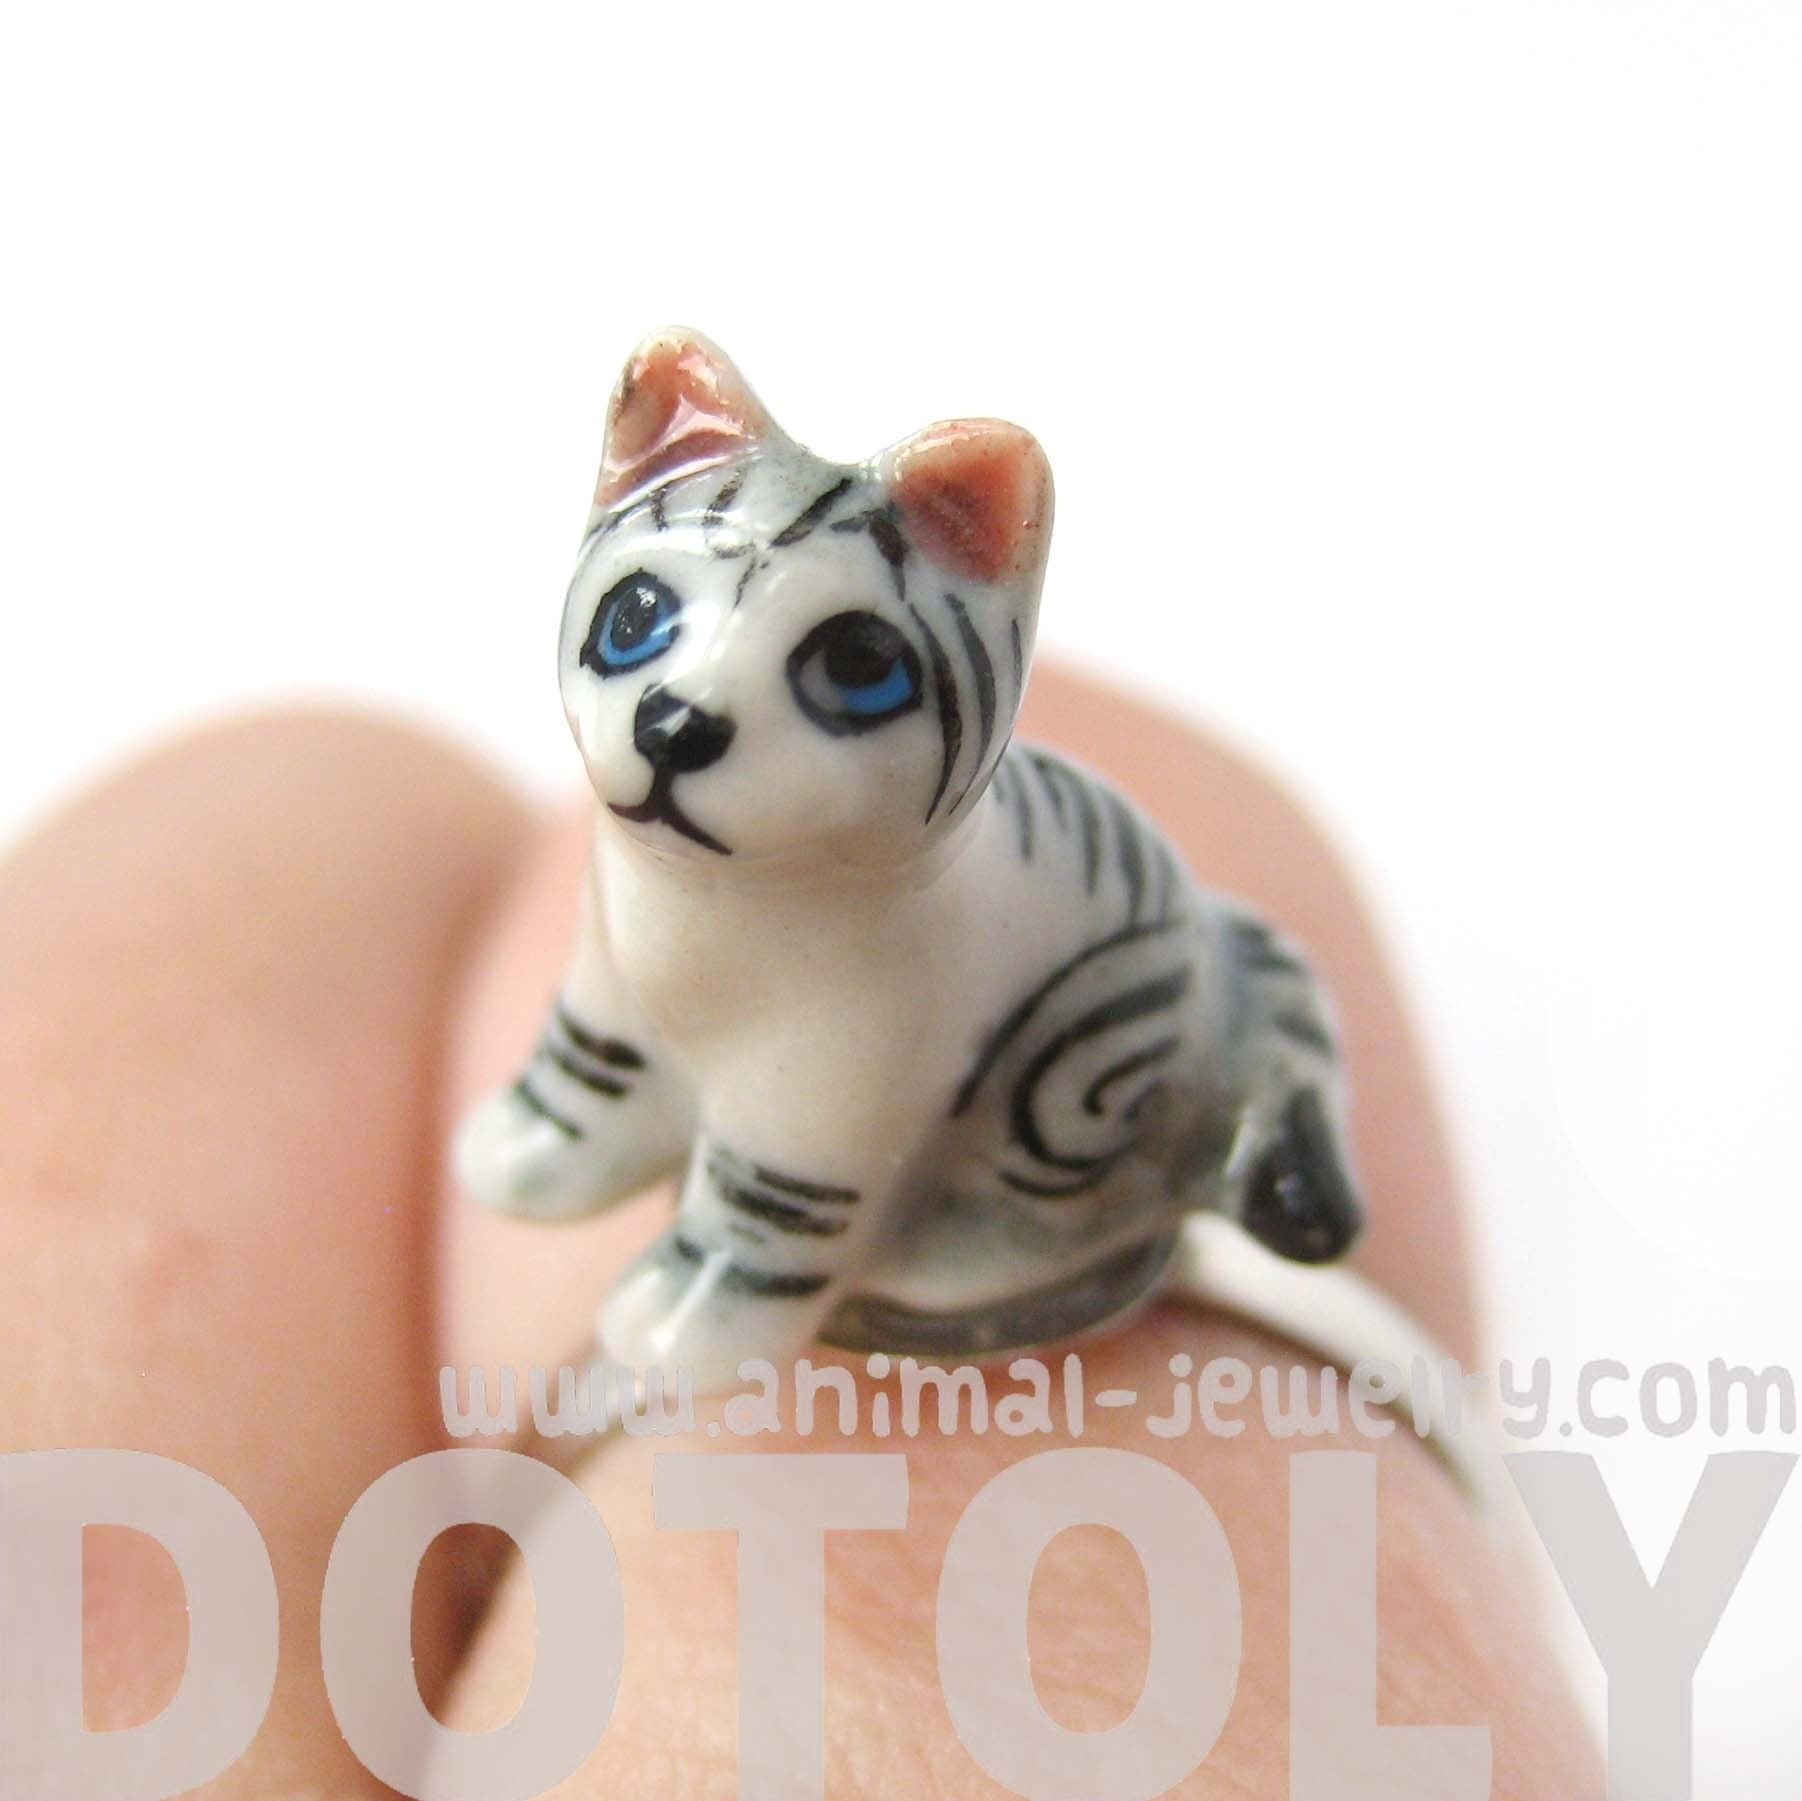 Porcelain Ceramic Adorable Kitty Cat Animal Adjustable Ring | Handmade